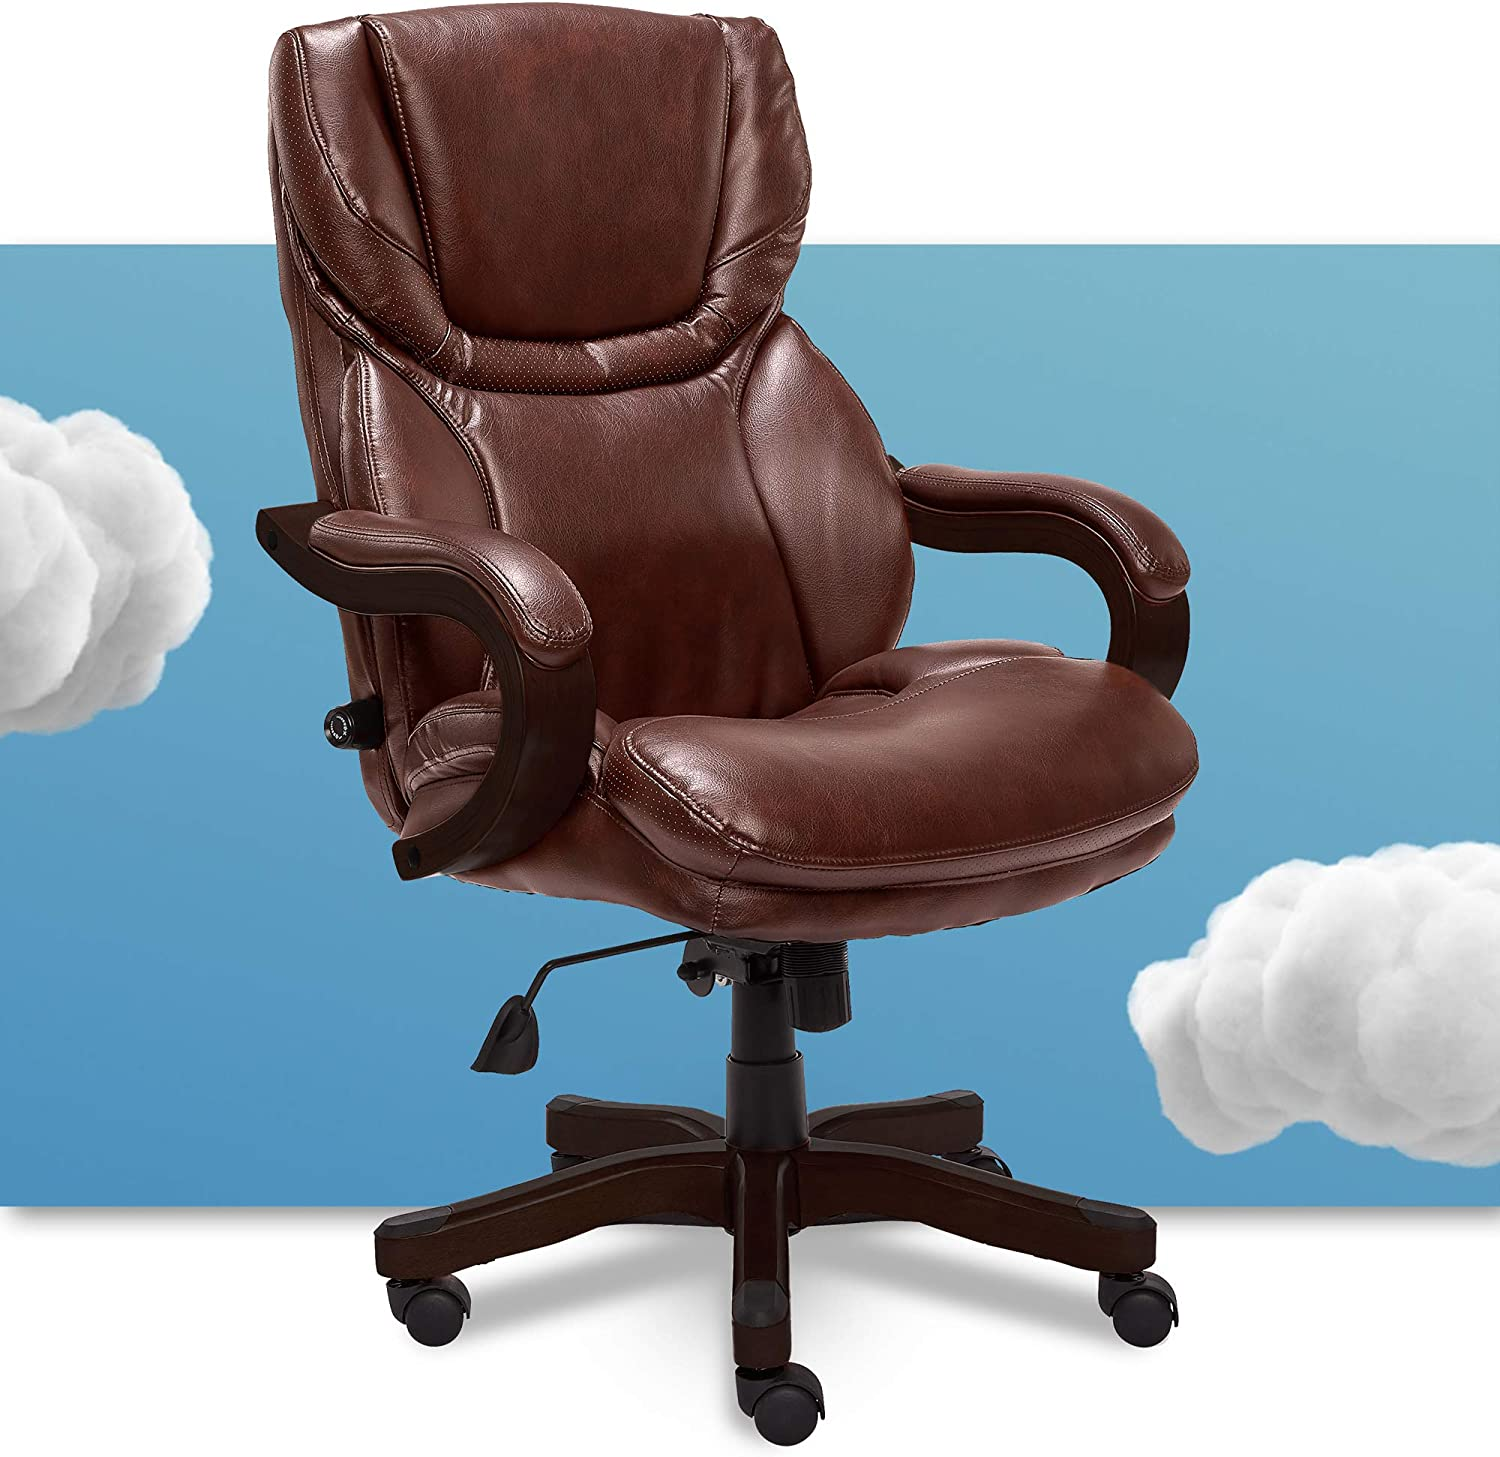 81ezA6qaAlL. AC SL1500 - What is The Best Chair For Sciatica Nerve Problems? Get Relief from Sciatica Pain - ChairPicks